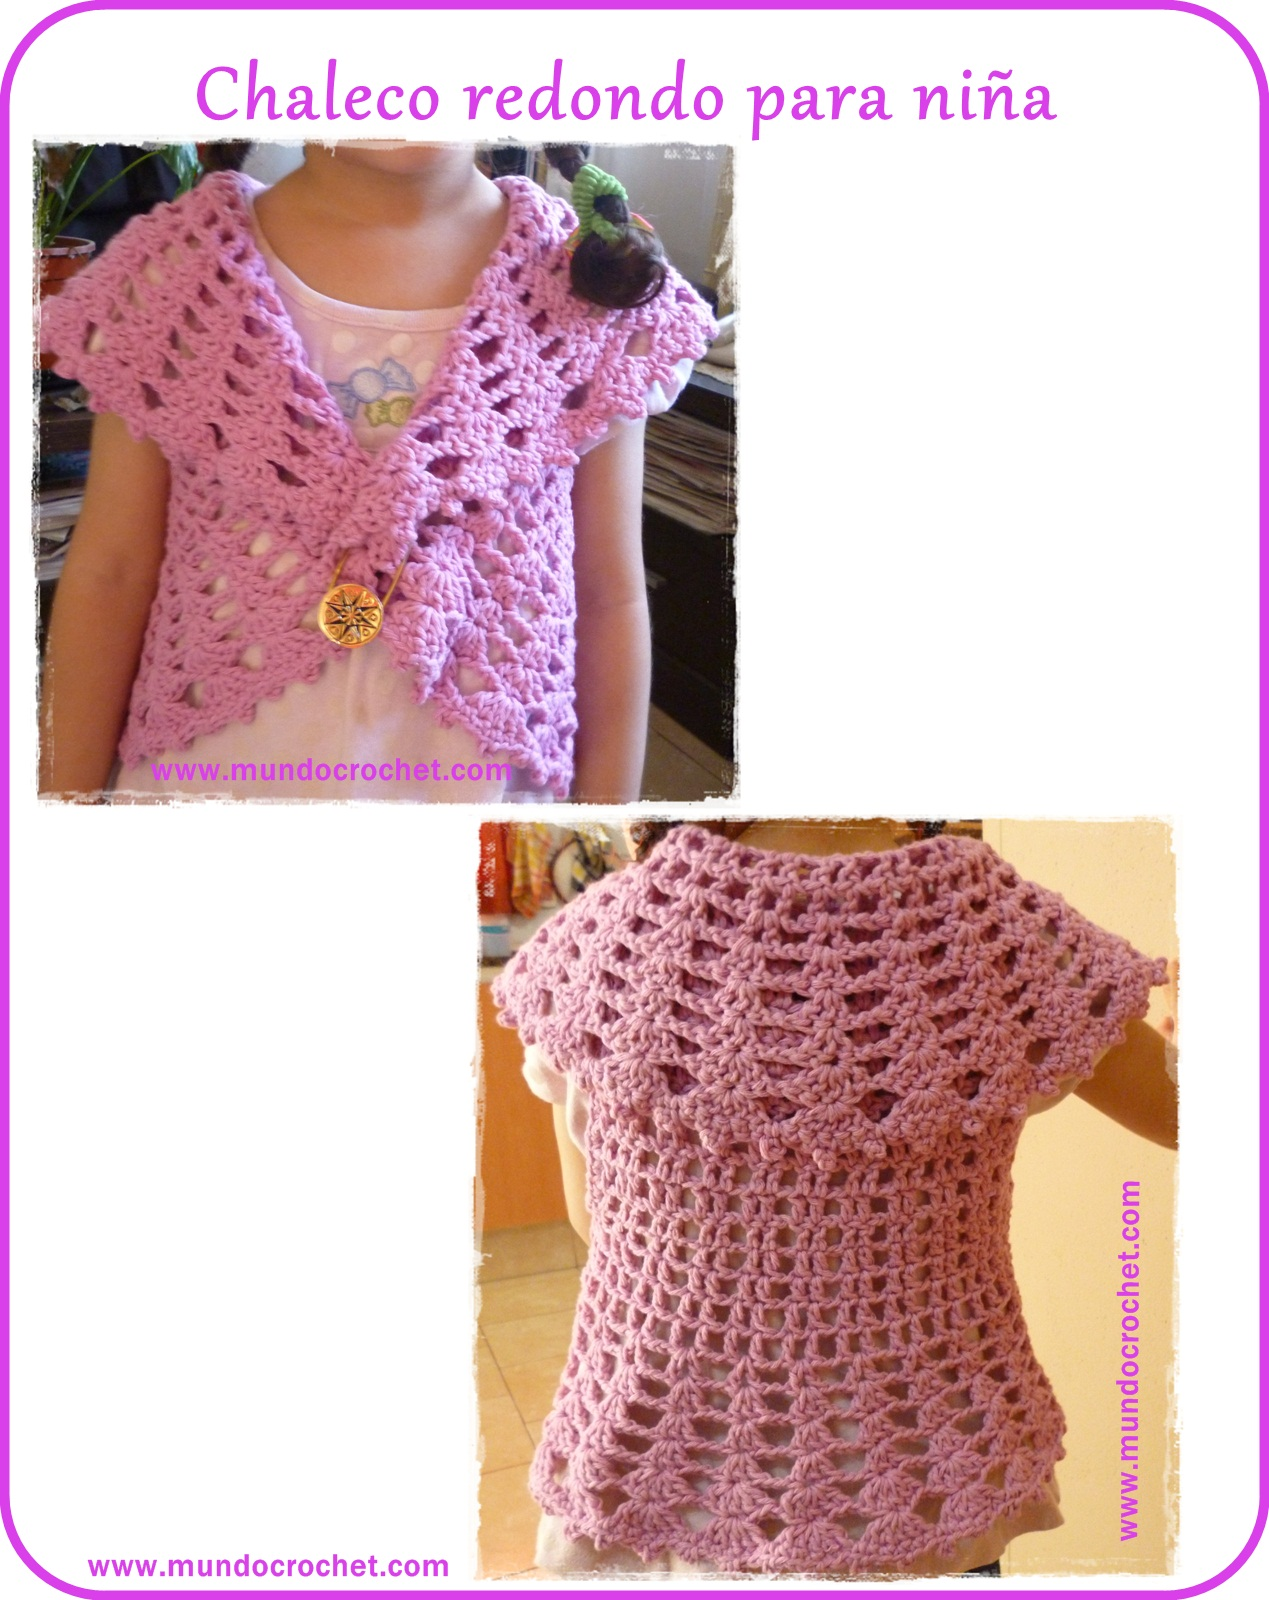 Paso a paso o tutorial Archives - Mundo Crochet